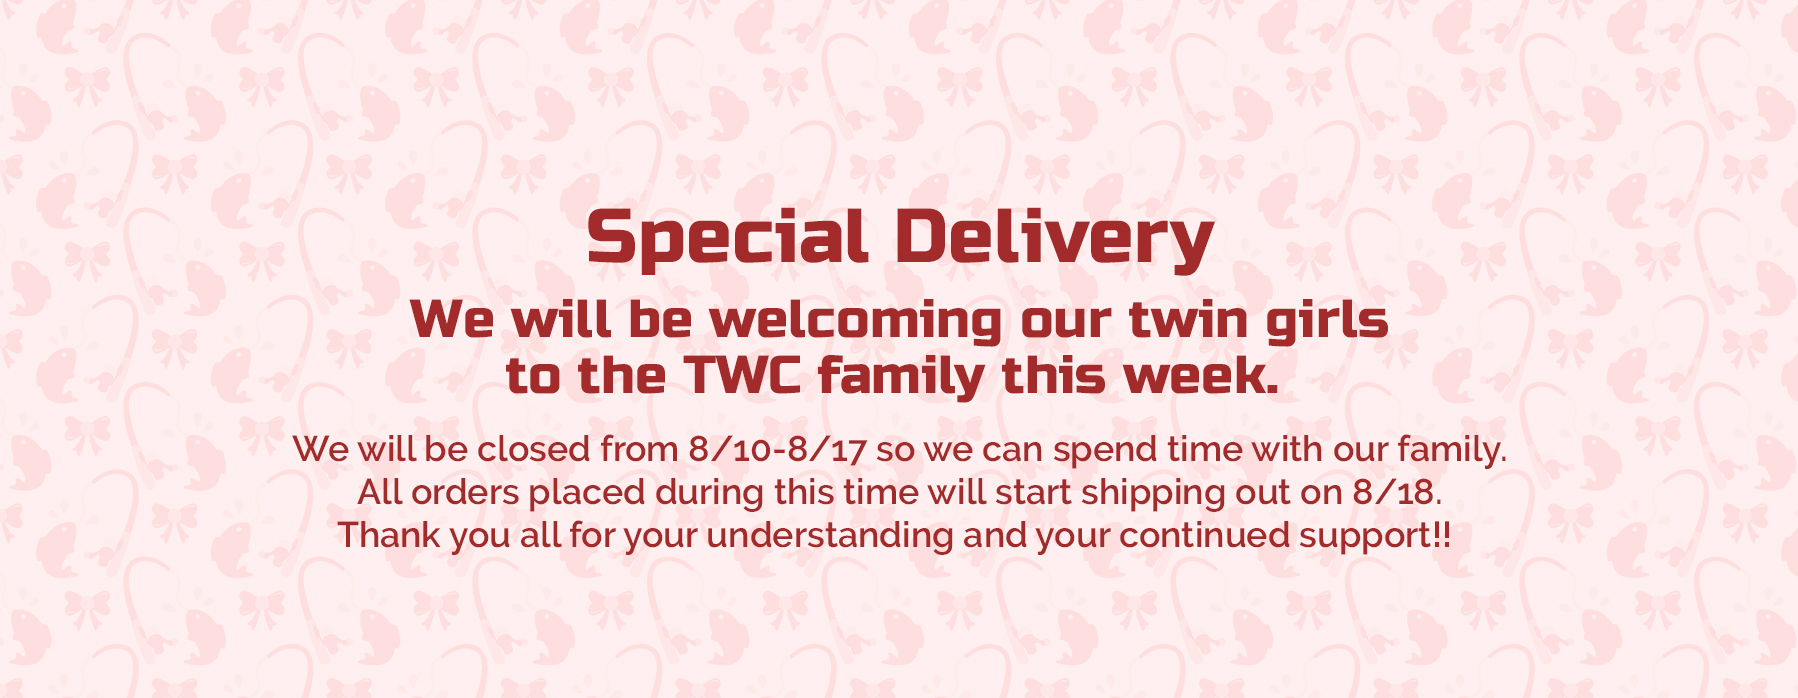 Special DeliveryWe will be welcoming our twin girlsto the TWC family this week. We will be closed from 8/10-8/17 so we can spend time with our family.All orders placed during this time will start shipping out on 8/18.Thank you all for your understanding and your continued support!!